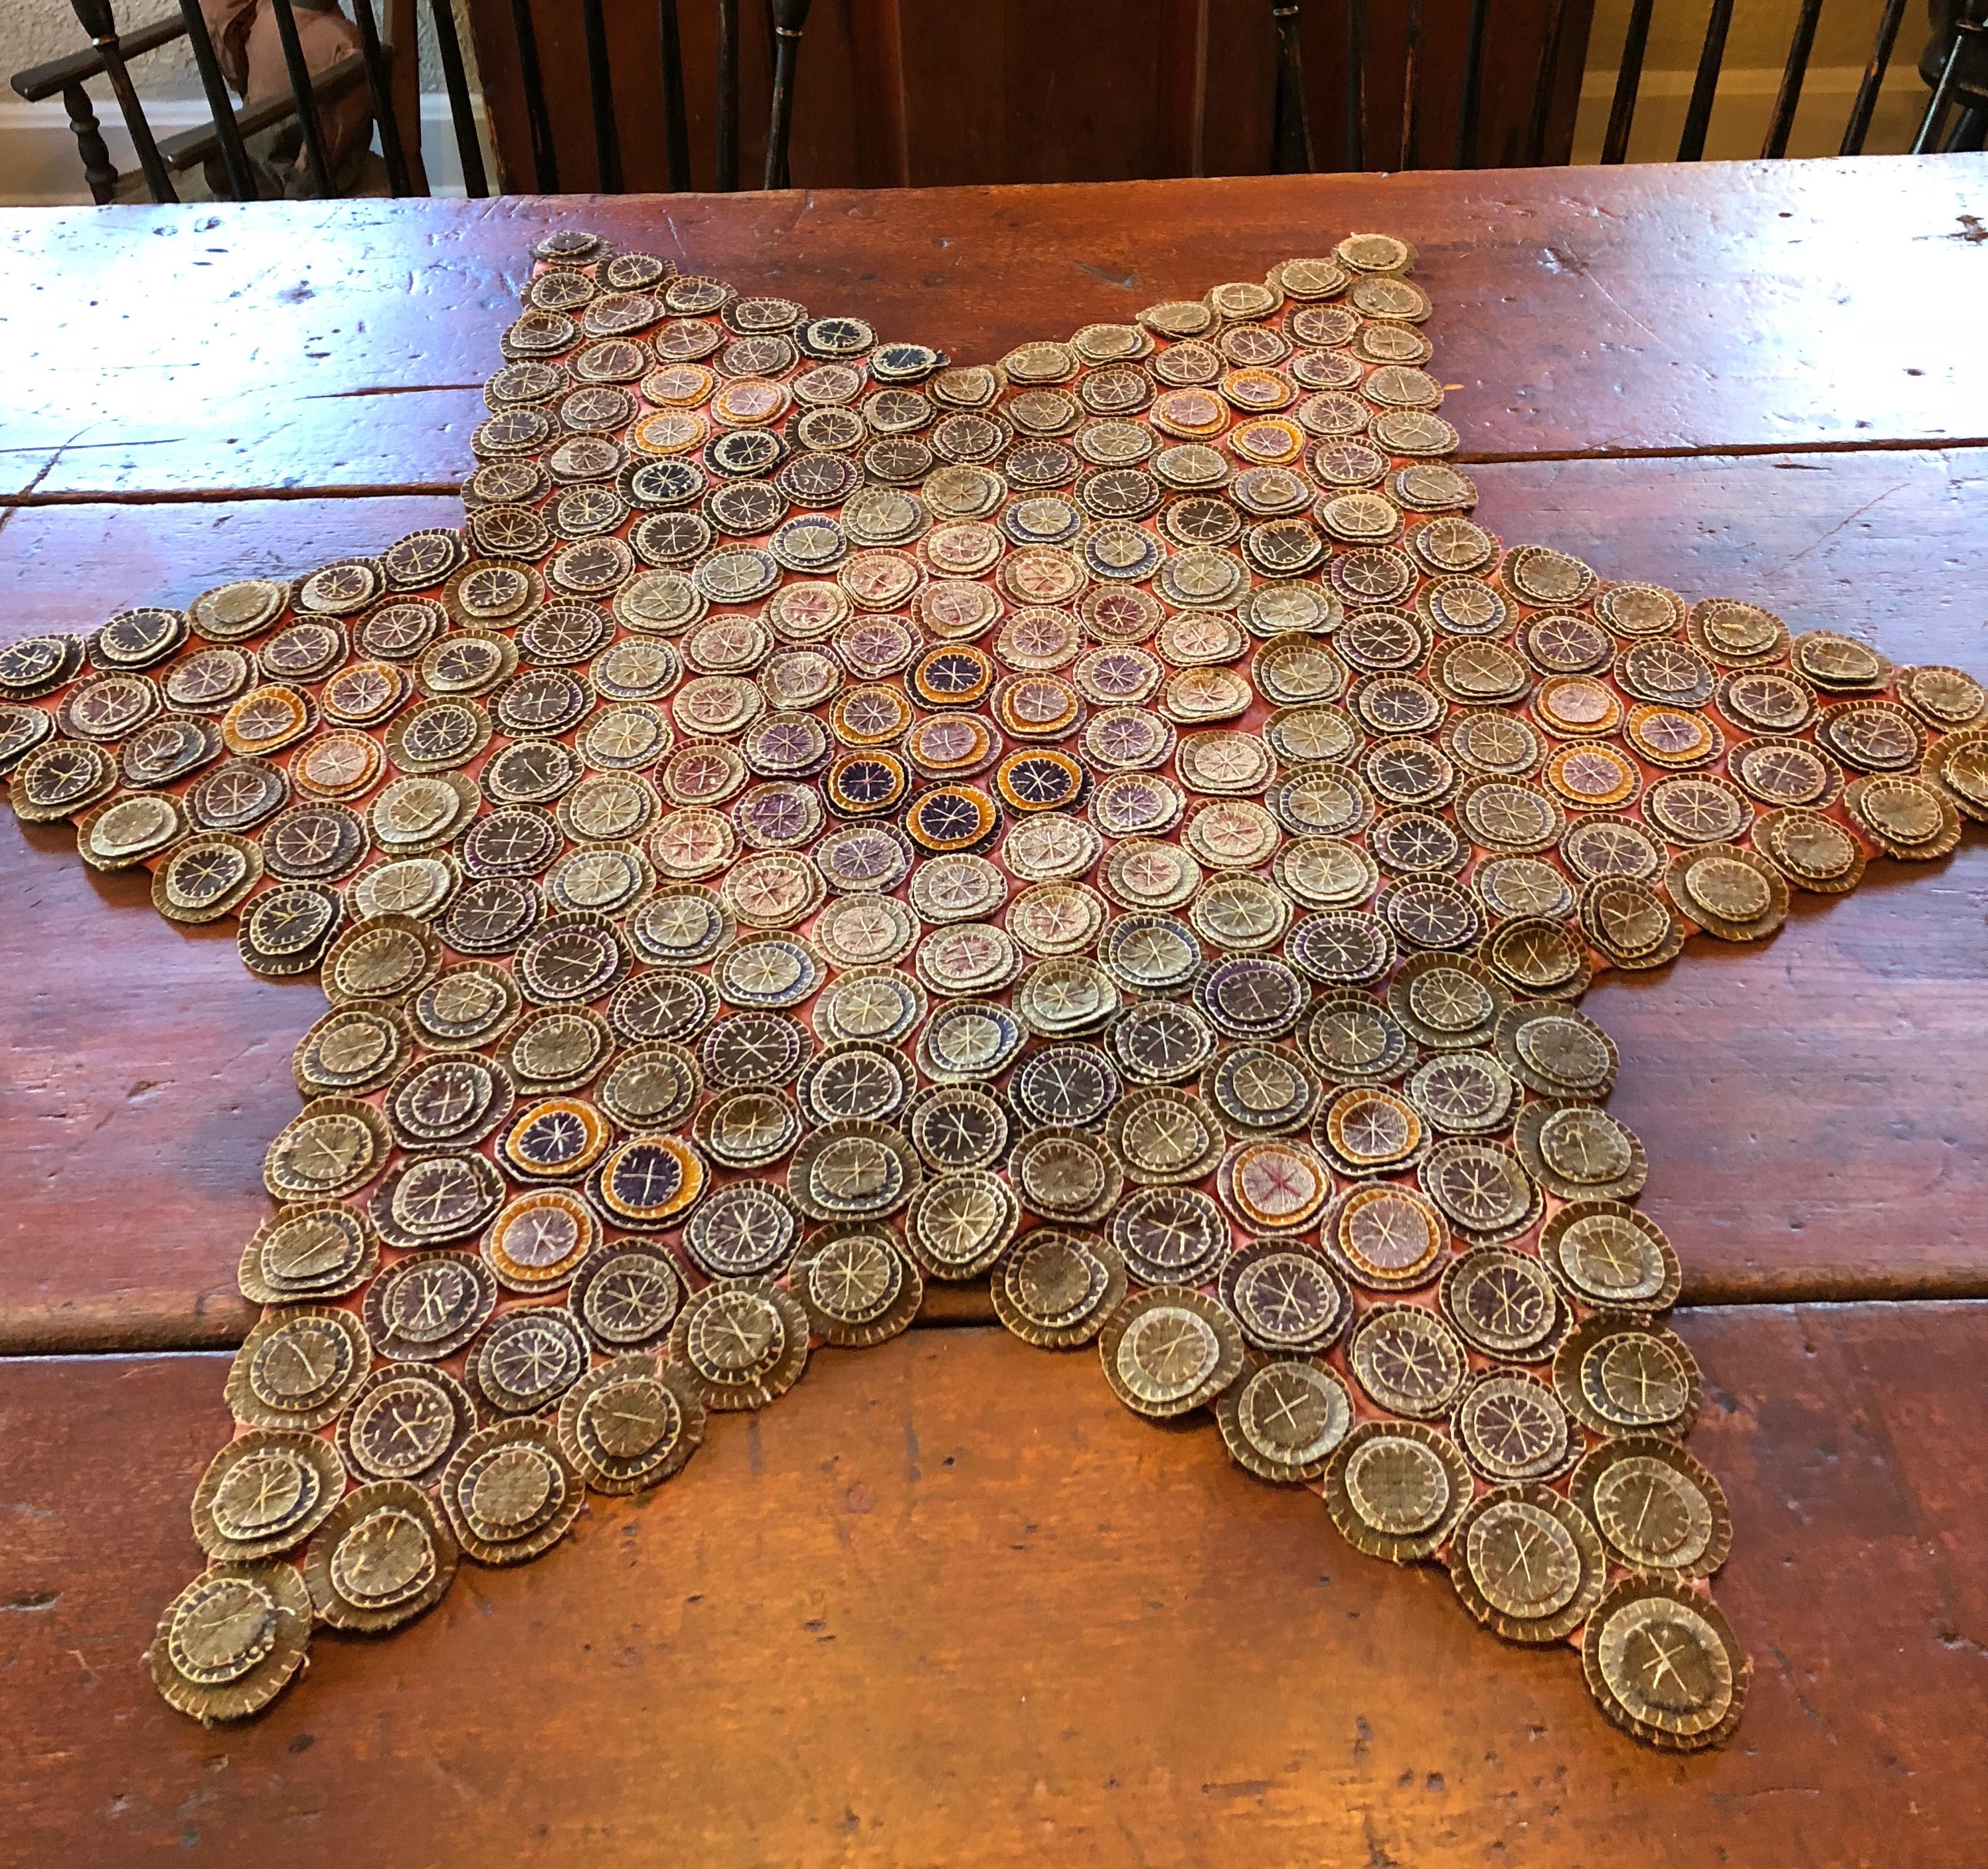 Large Star Shaped Penny Rug